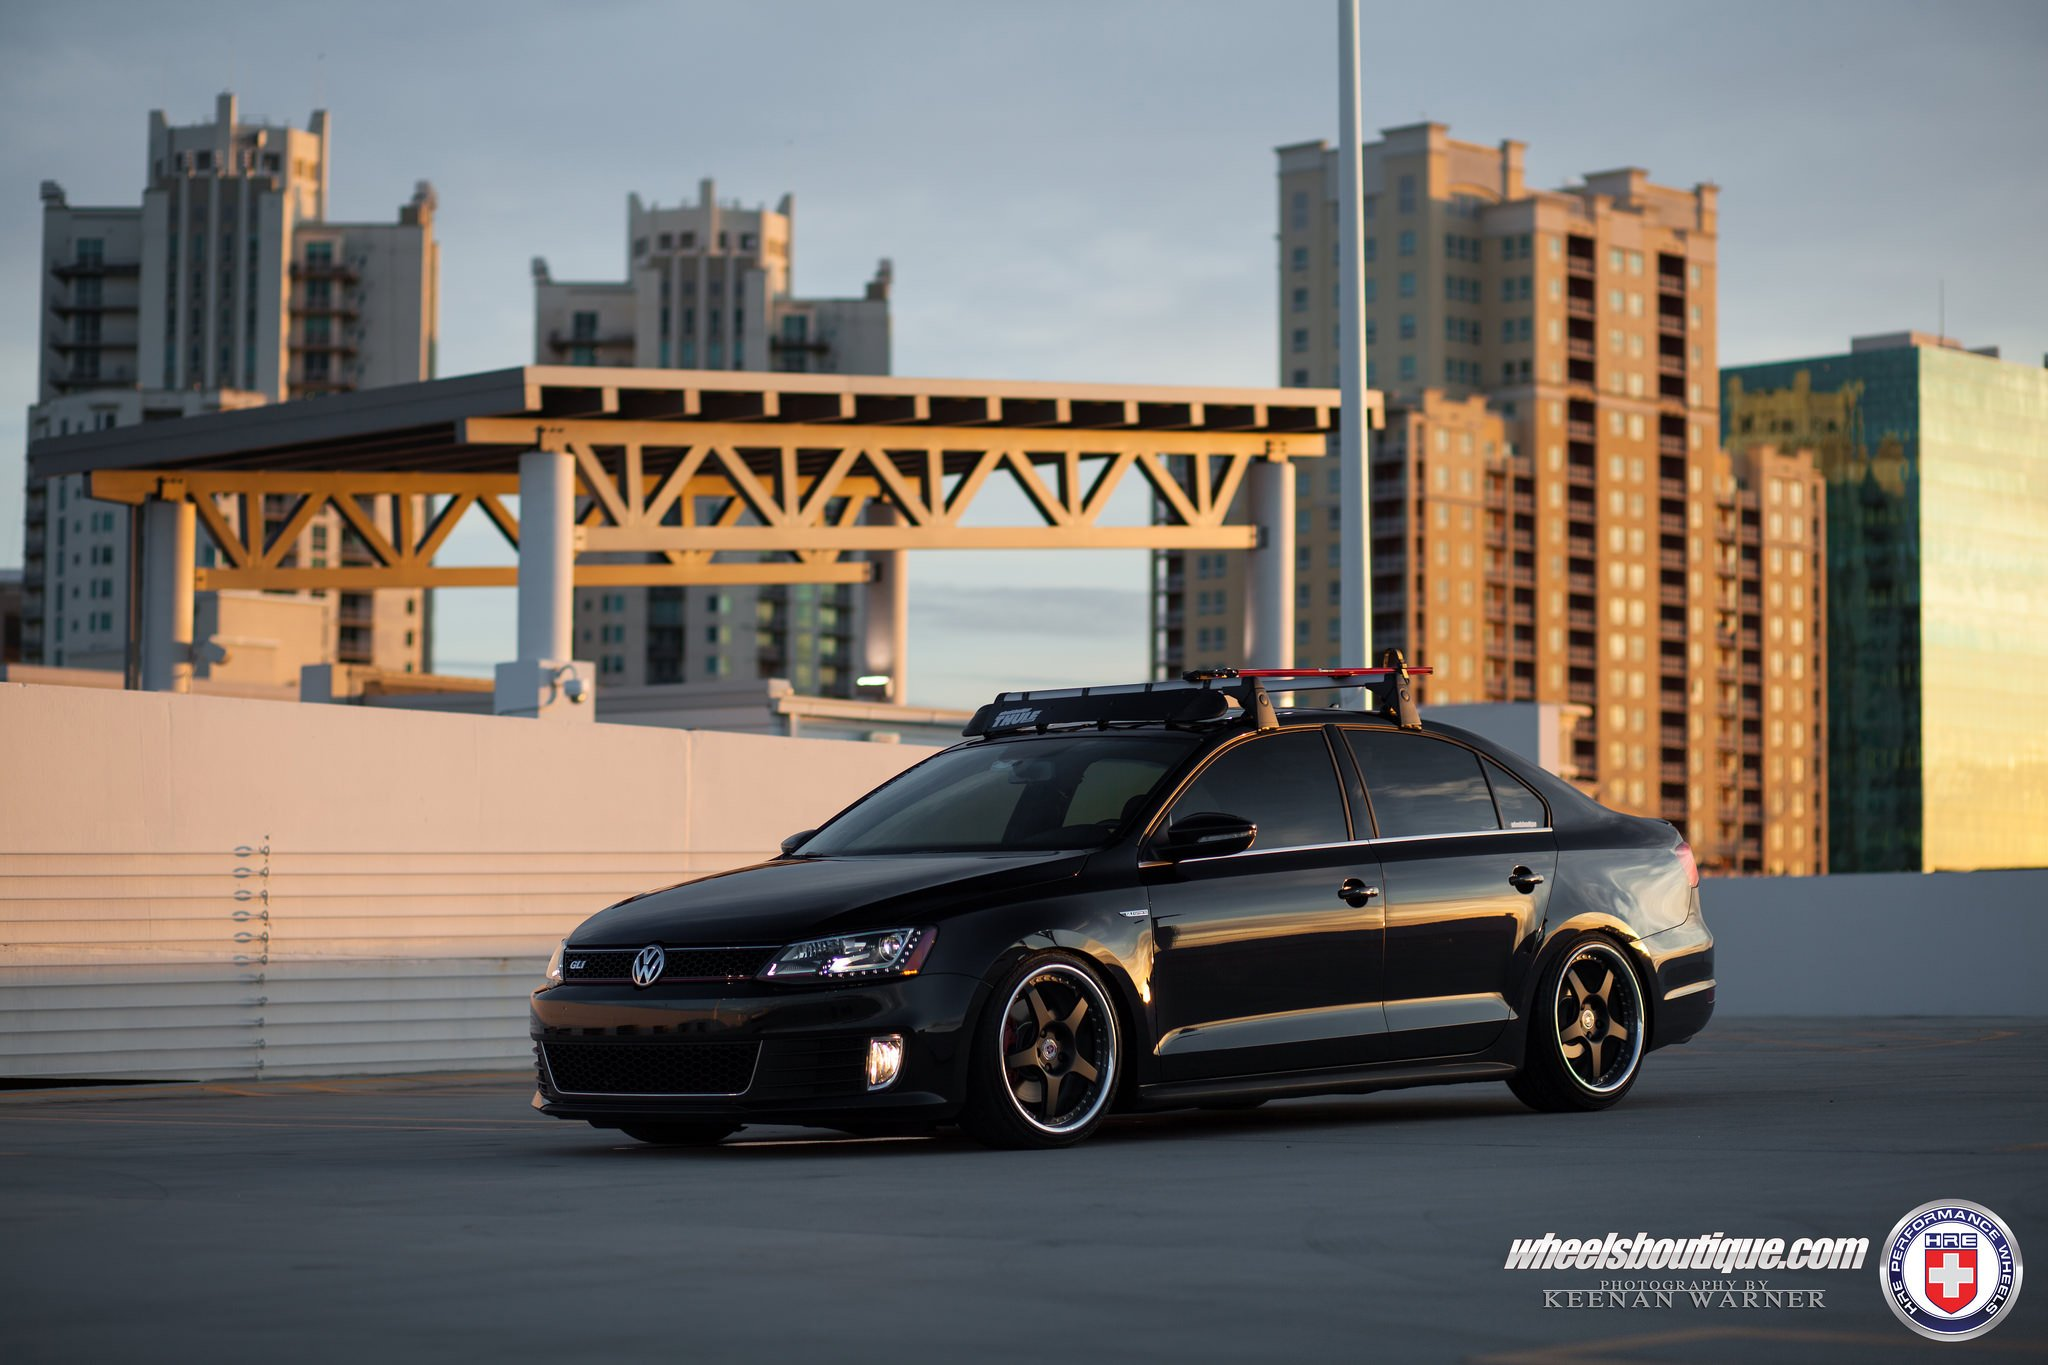 volkswagen jetta sedan gli hre wheels tuning cars sedan black wallpaper 2048x1365 718155. Black Bedroom Furniture Sets. Home Design Ideas